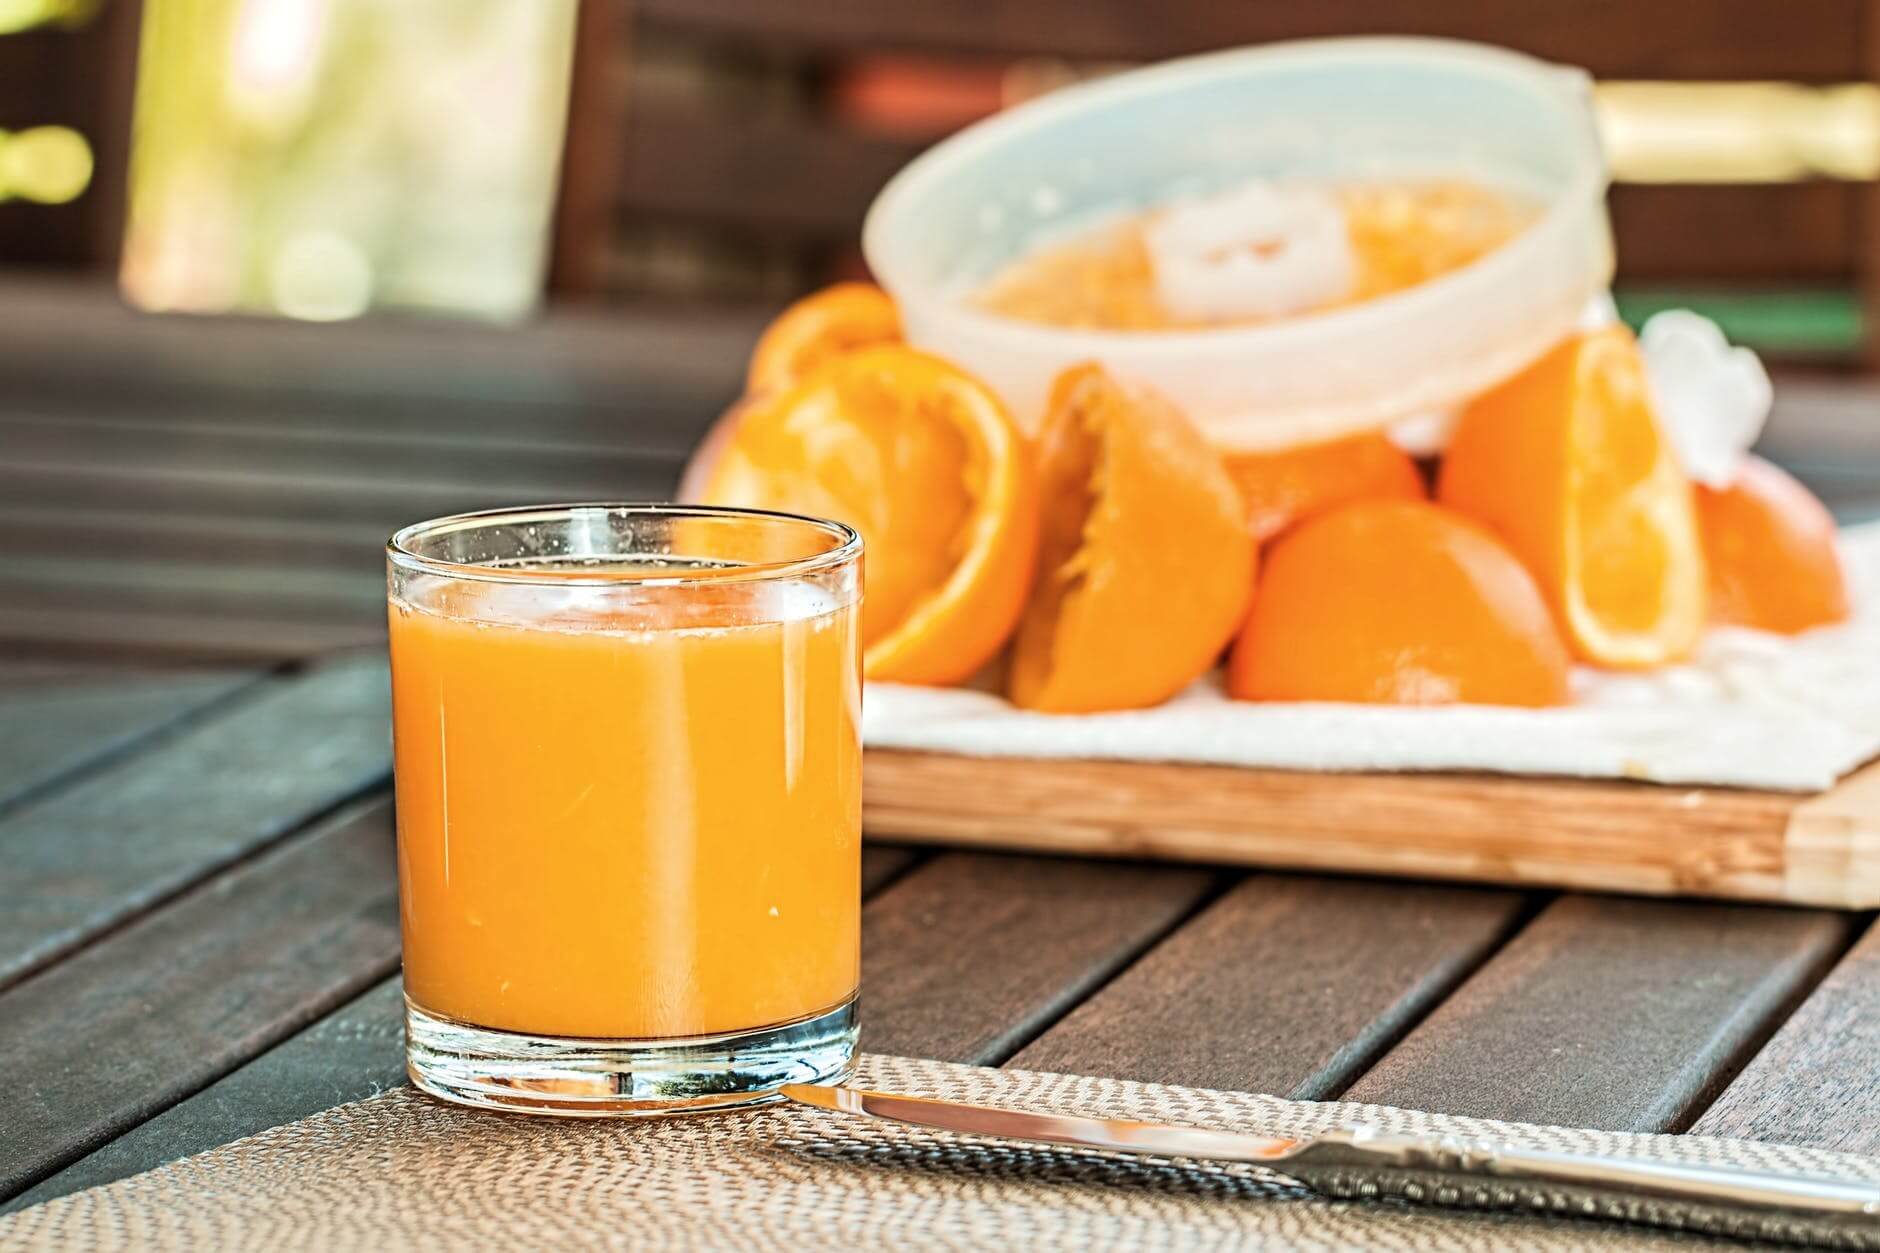 A glass of freshly squeezed orange juice. Citrus fruits are great for the fight against COVID19